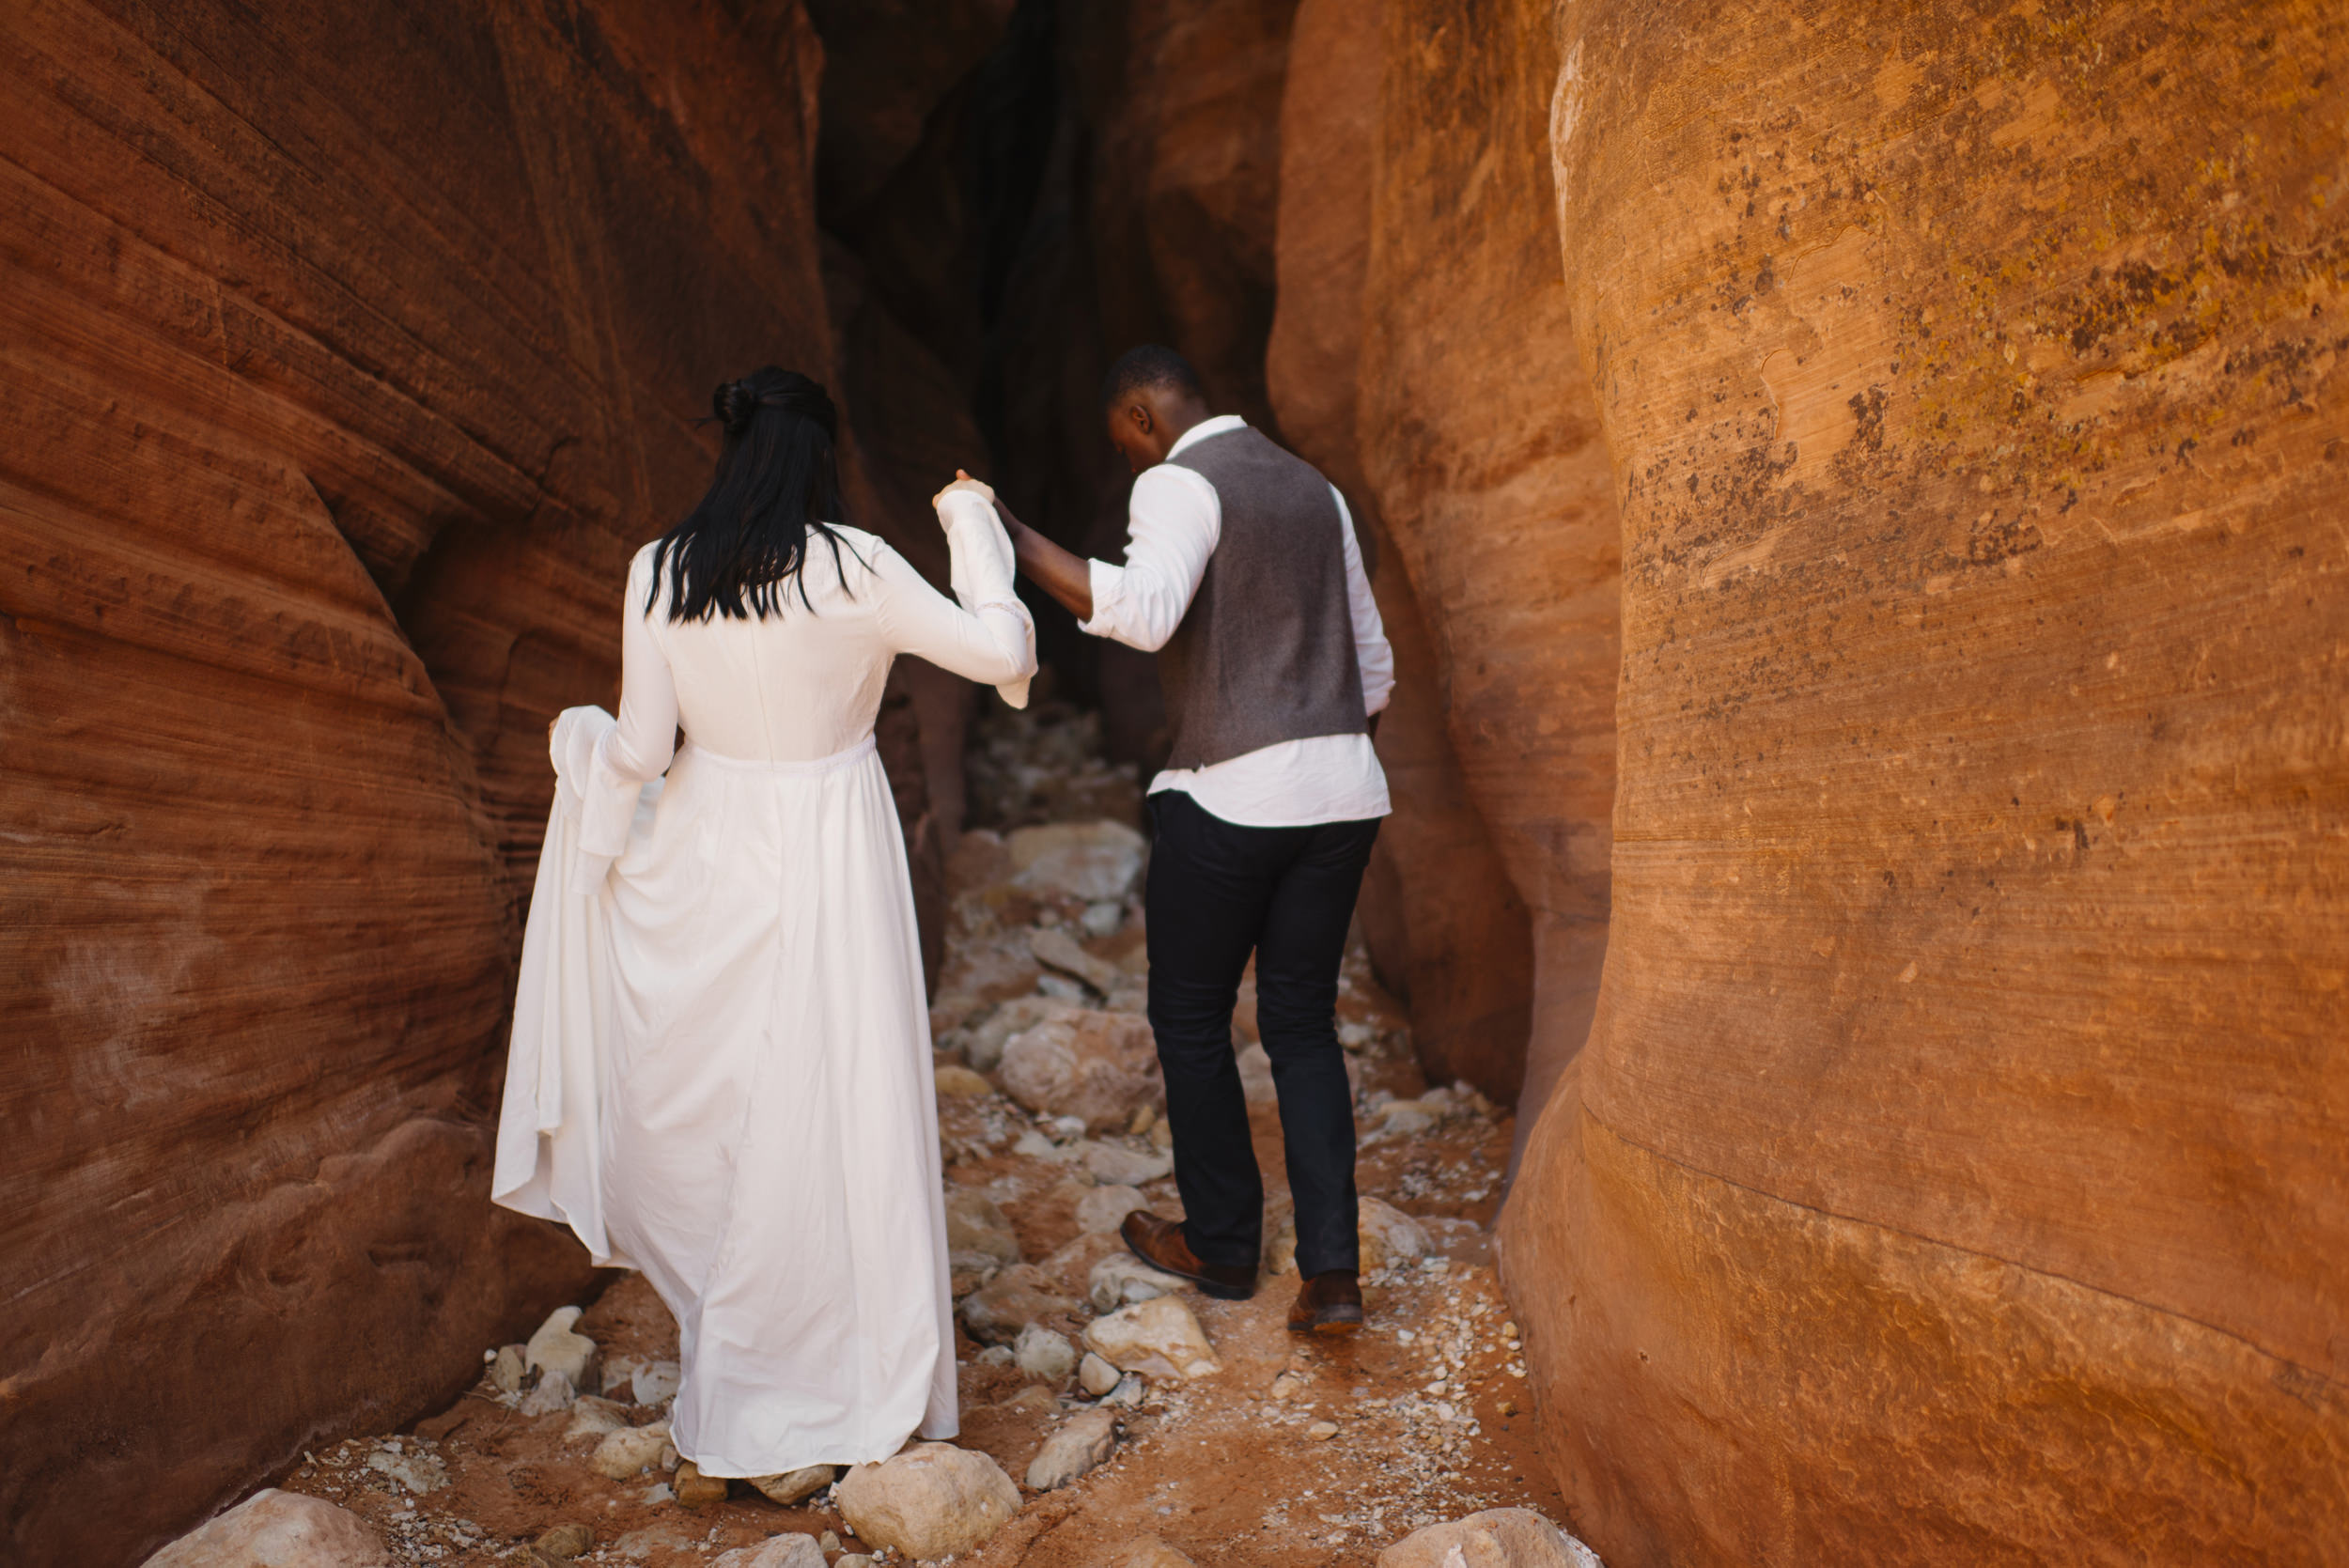 A man holds his wife's hand leading her into a slot canyon during their Antelope Canyon Couple's Adventure Photography Session with Utah Destination Elopement Photographer Colby and Jess